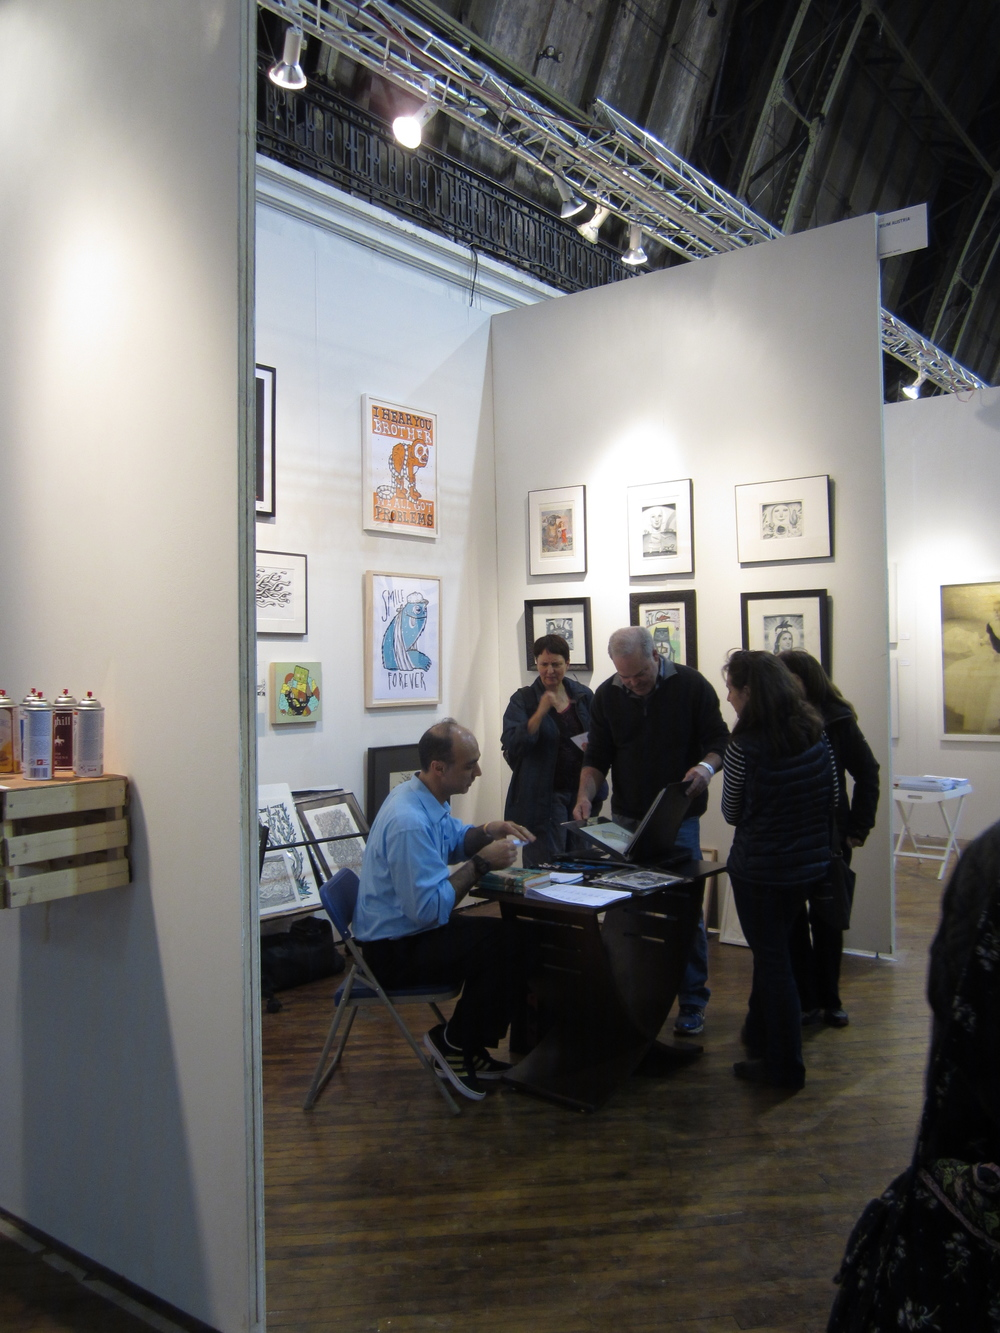 Paul Fernandez-Carol at NYC Fountain Art Fair, March 7-9, 2014. On the left wall, works by Michael Sieben. On the right wall, works by Glynis Sweeny.